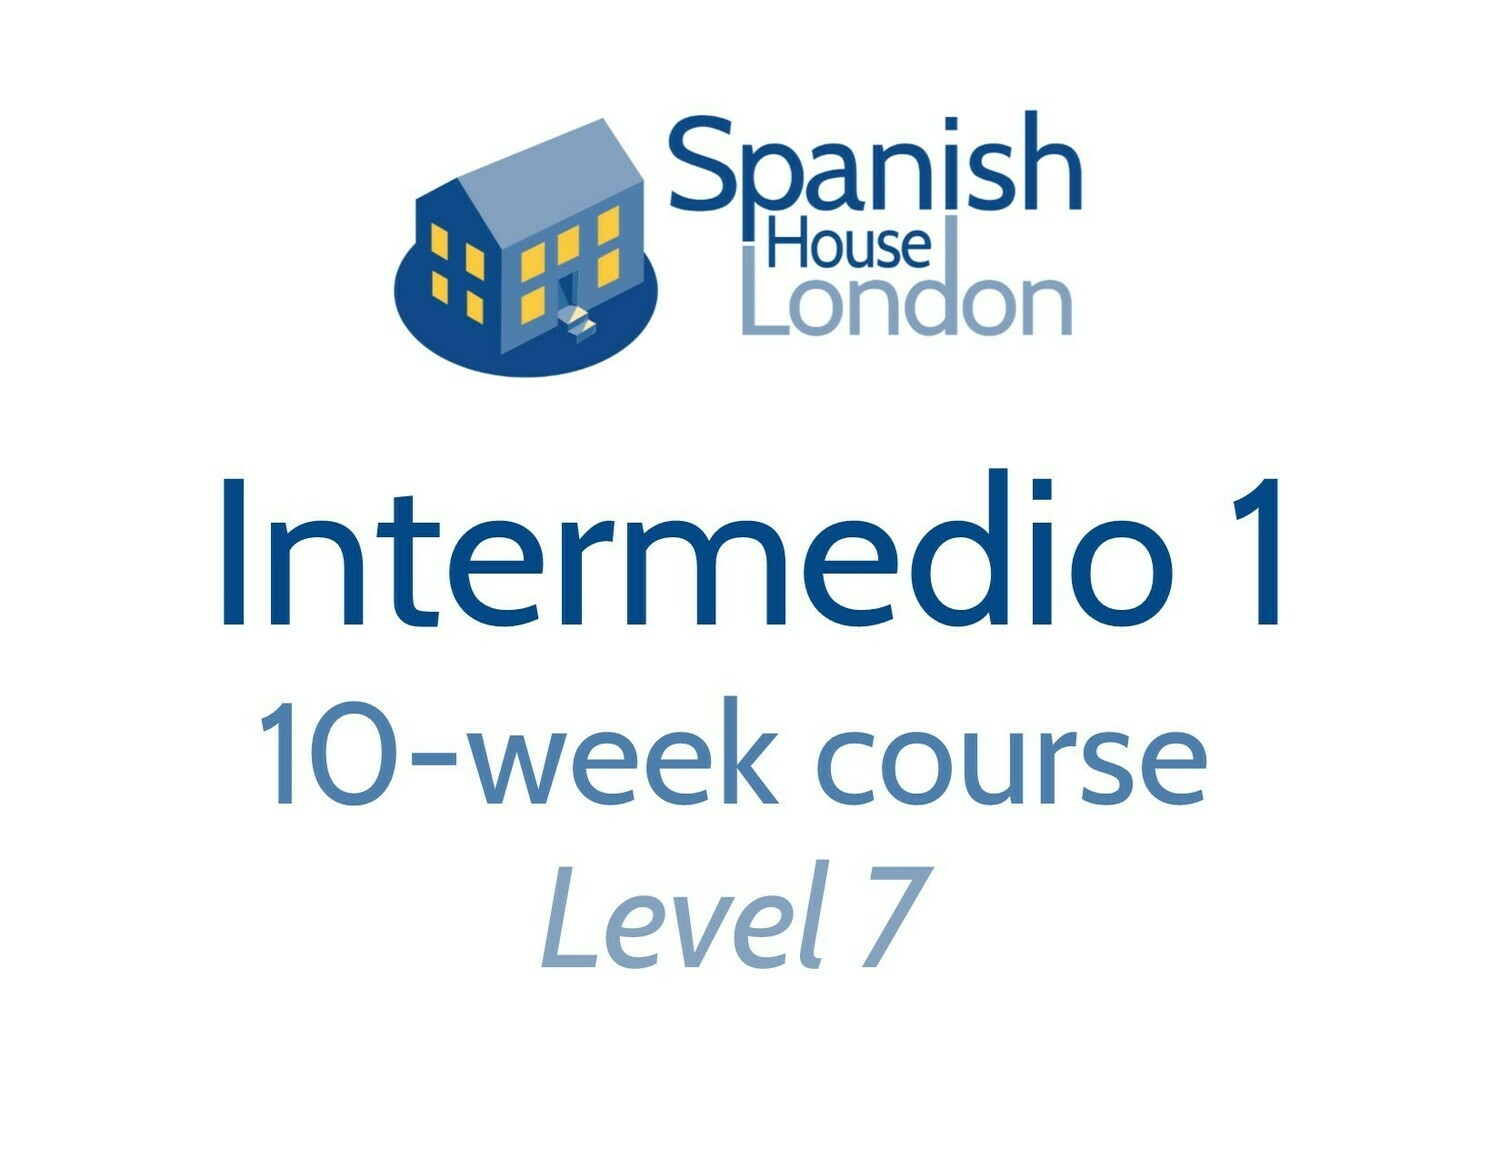 Intermedio 1 Course starting on 13th August at 6pm in Euston